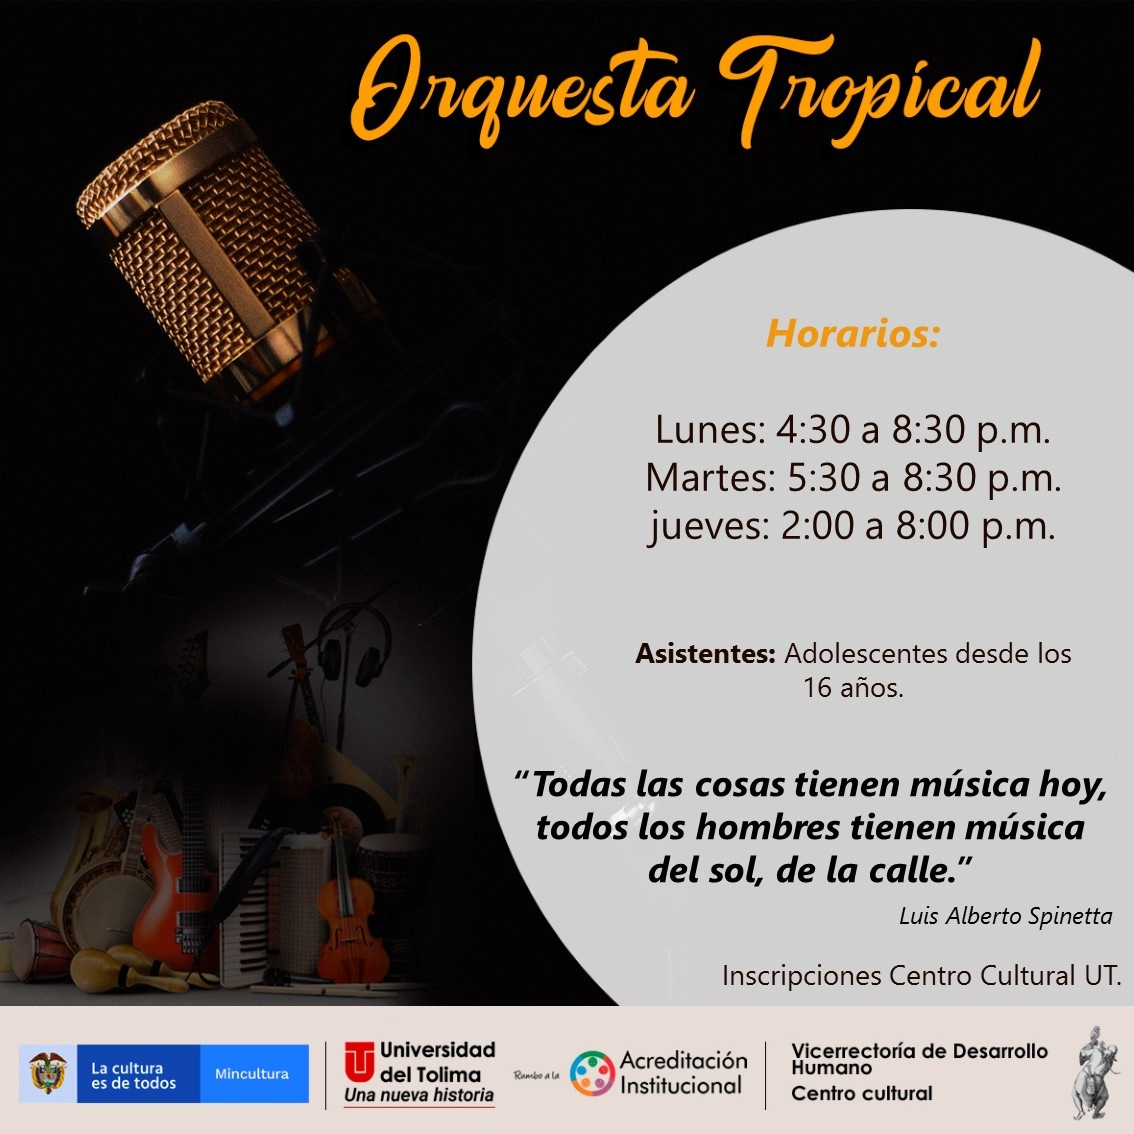 Orquesta tropical